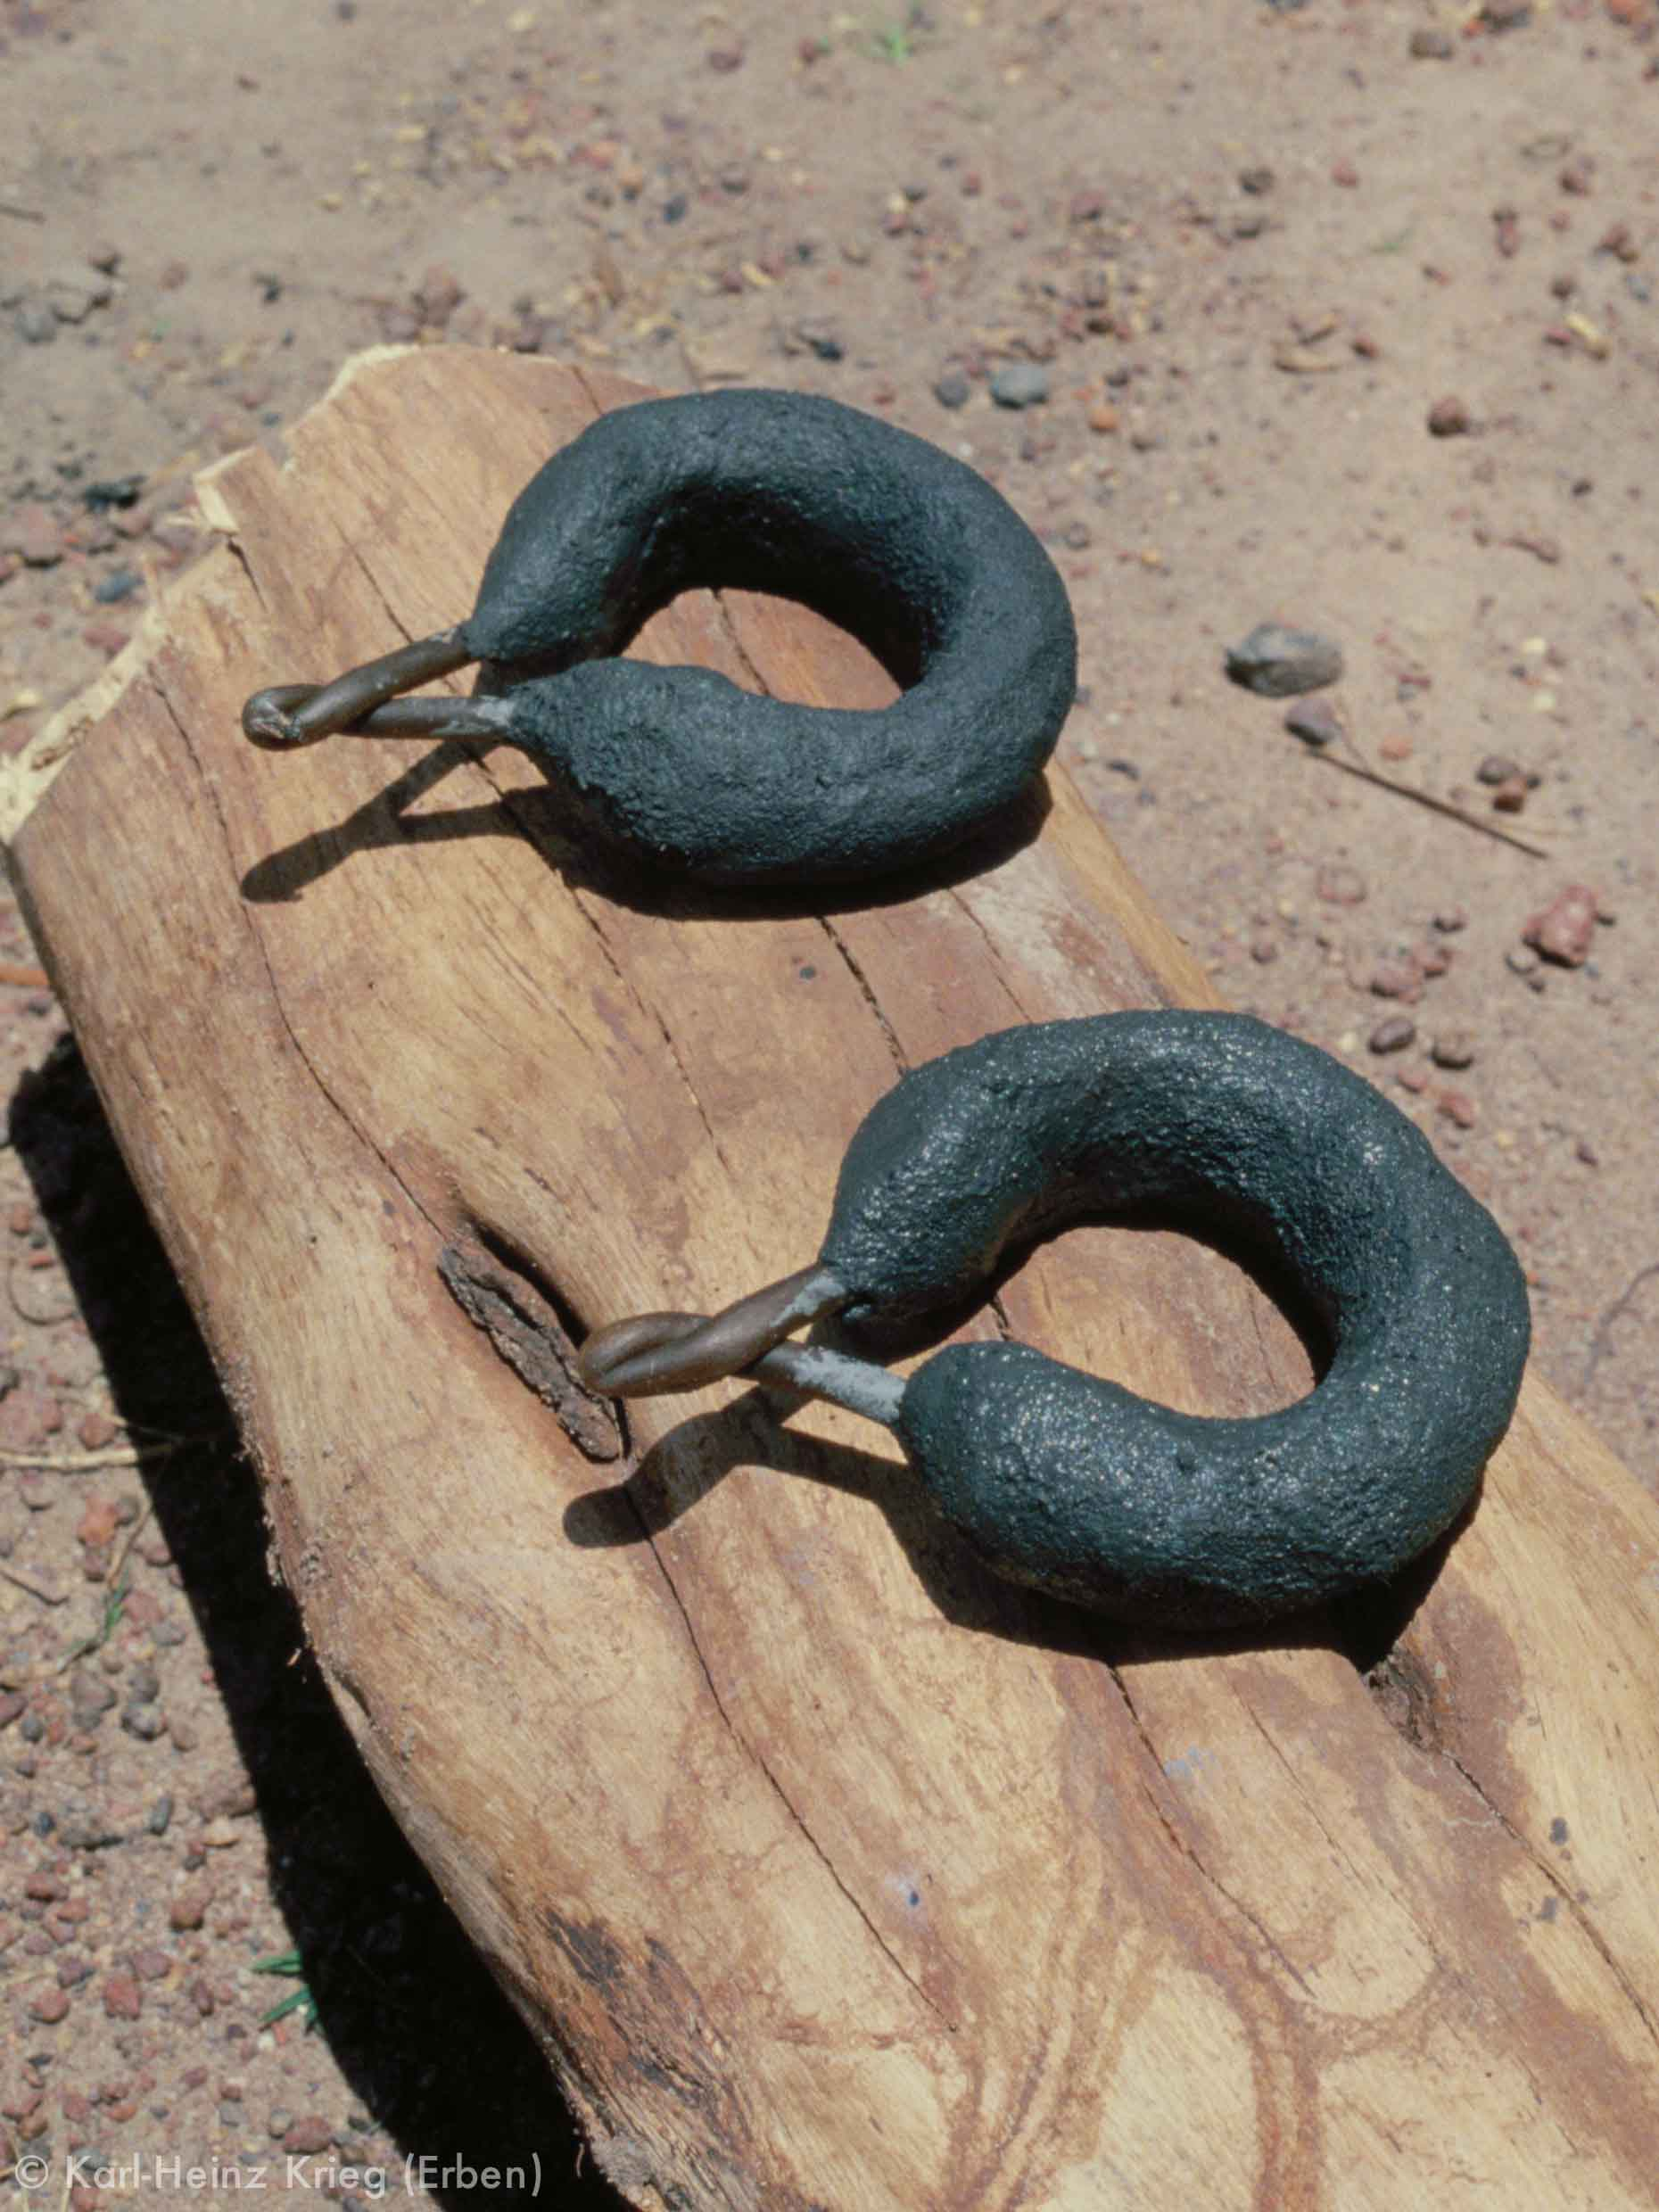 Bracelets covered with clay. Photo: Karl-Heinz Krieg, Nafoun (Region of Boundiali, Côte d'Ivoire), 1977